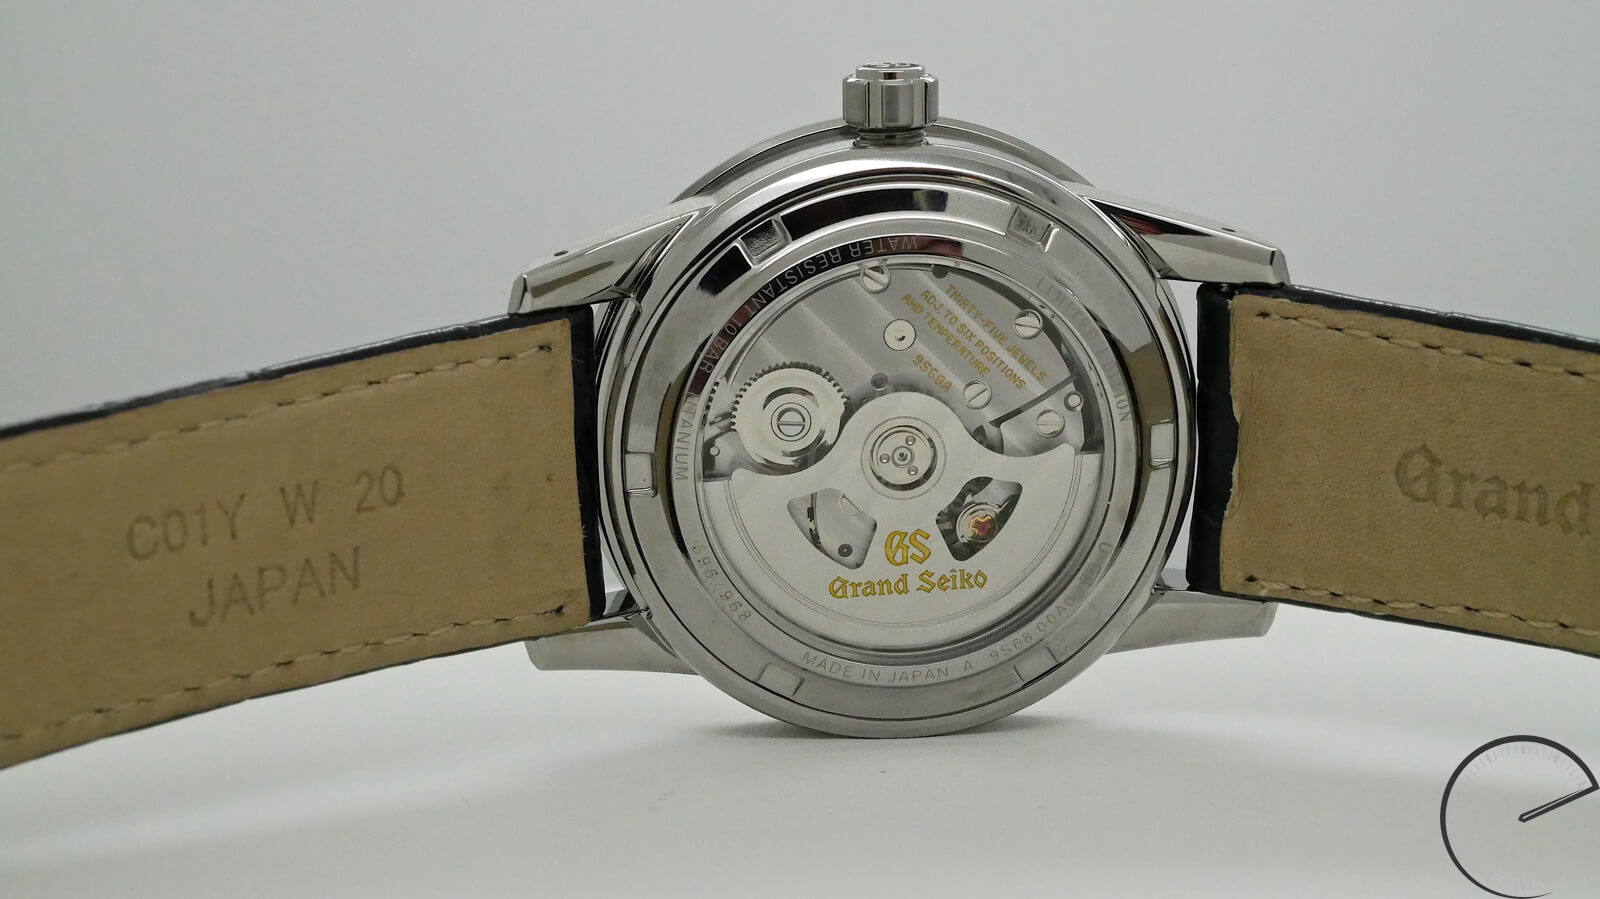 Grand Seiko SBGR305 - automatic watch with 8 beat movement